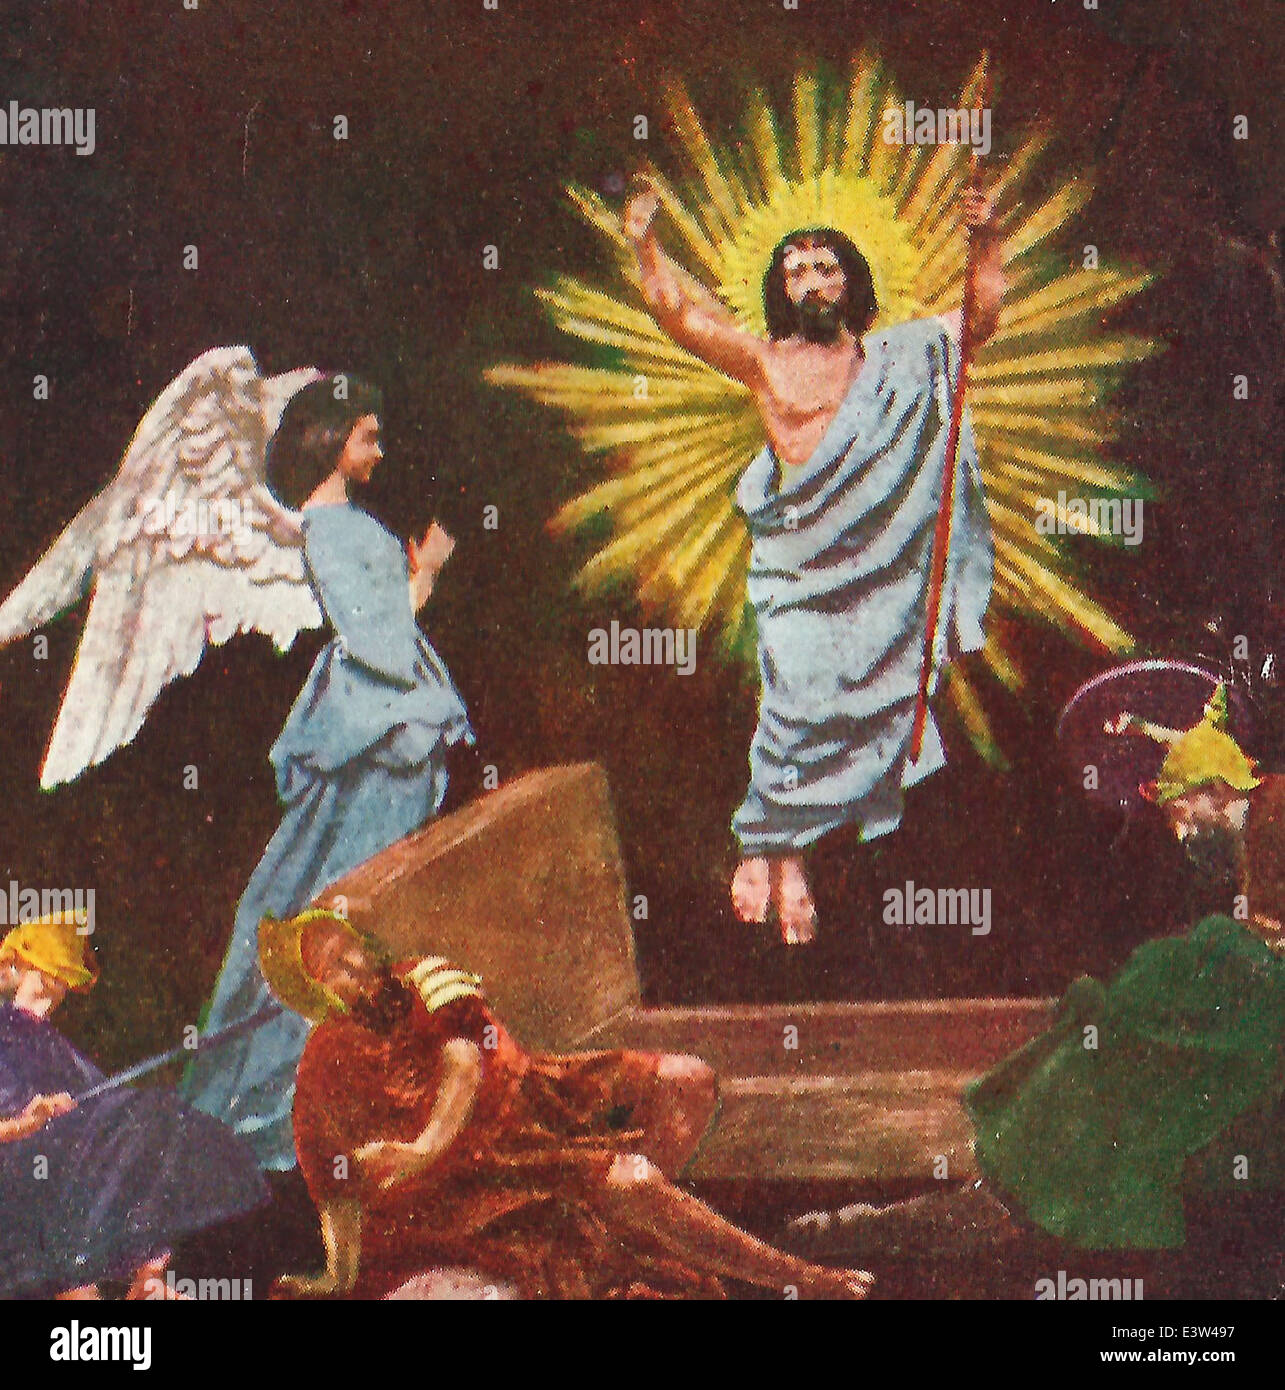 The Resurrection - Jesus Christ rises from the dead - Stock Image